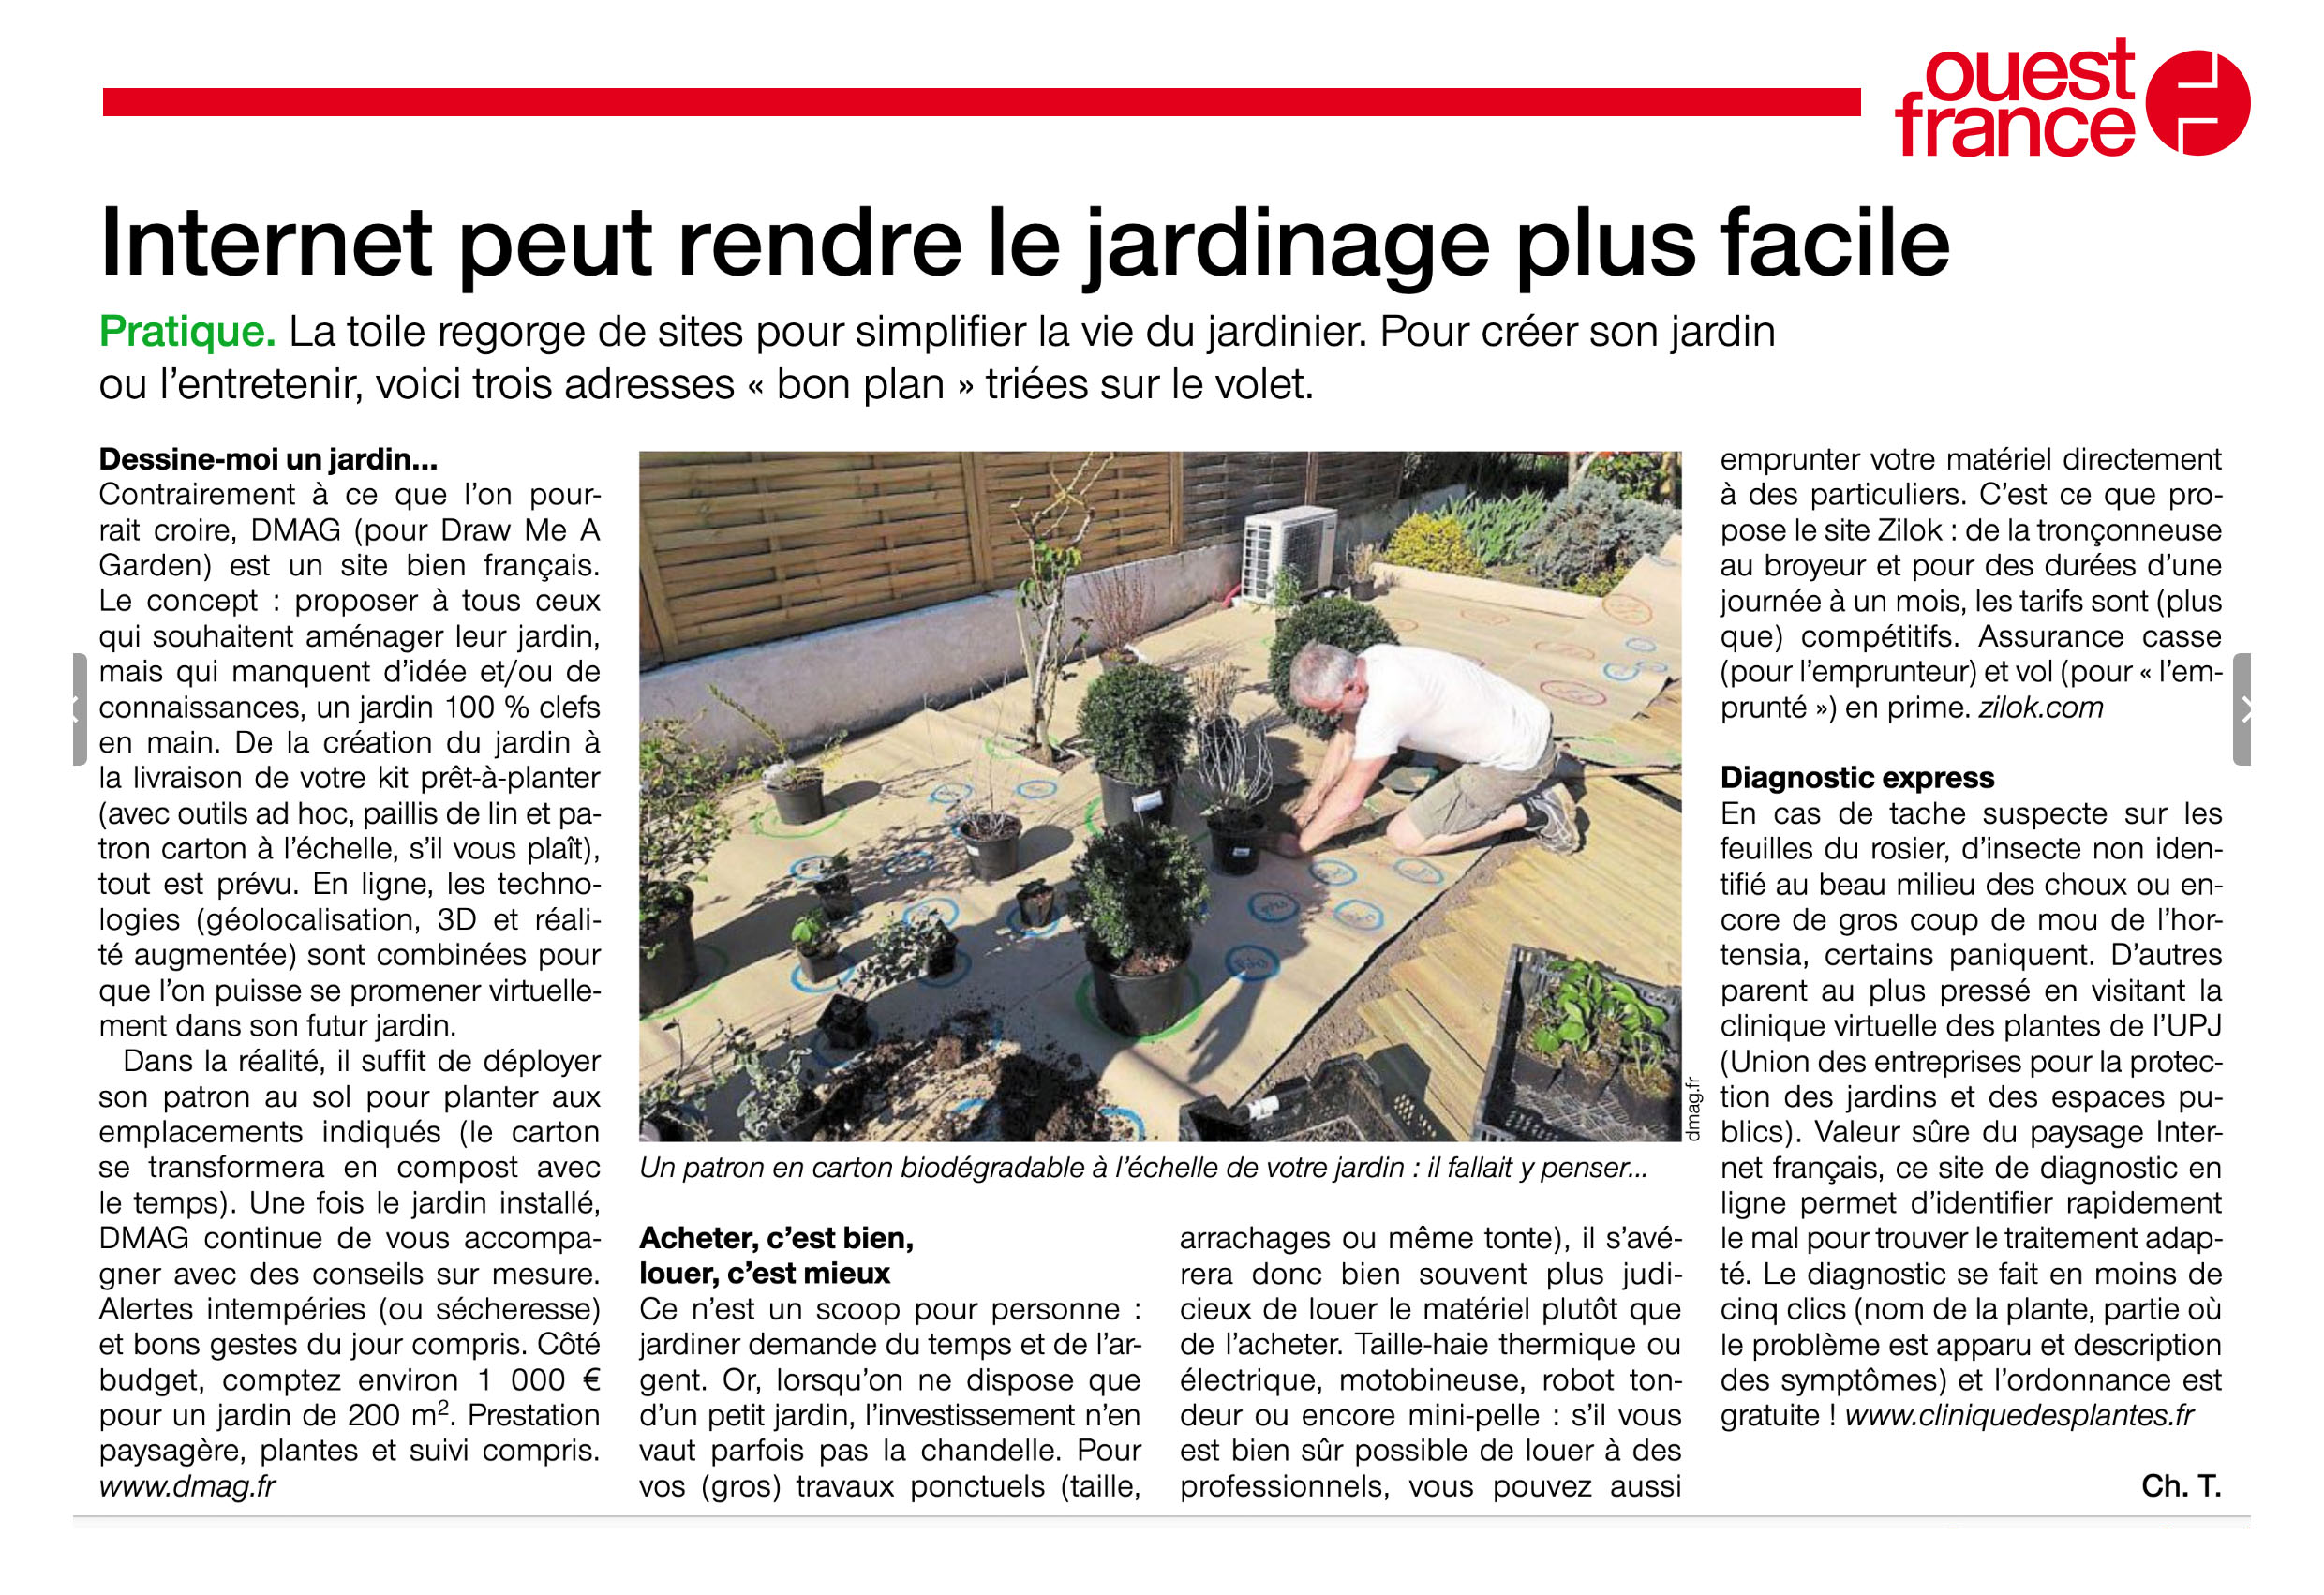 Press report on Draw Me A Garden published in Ouest France paper